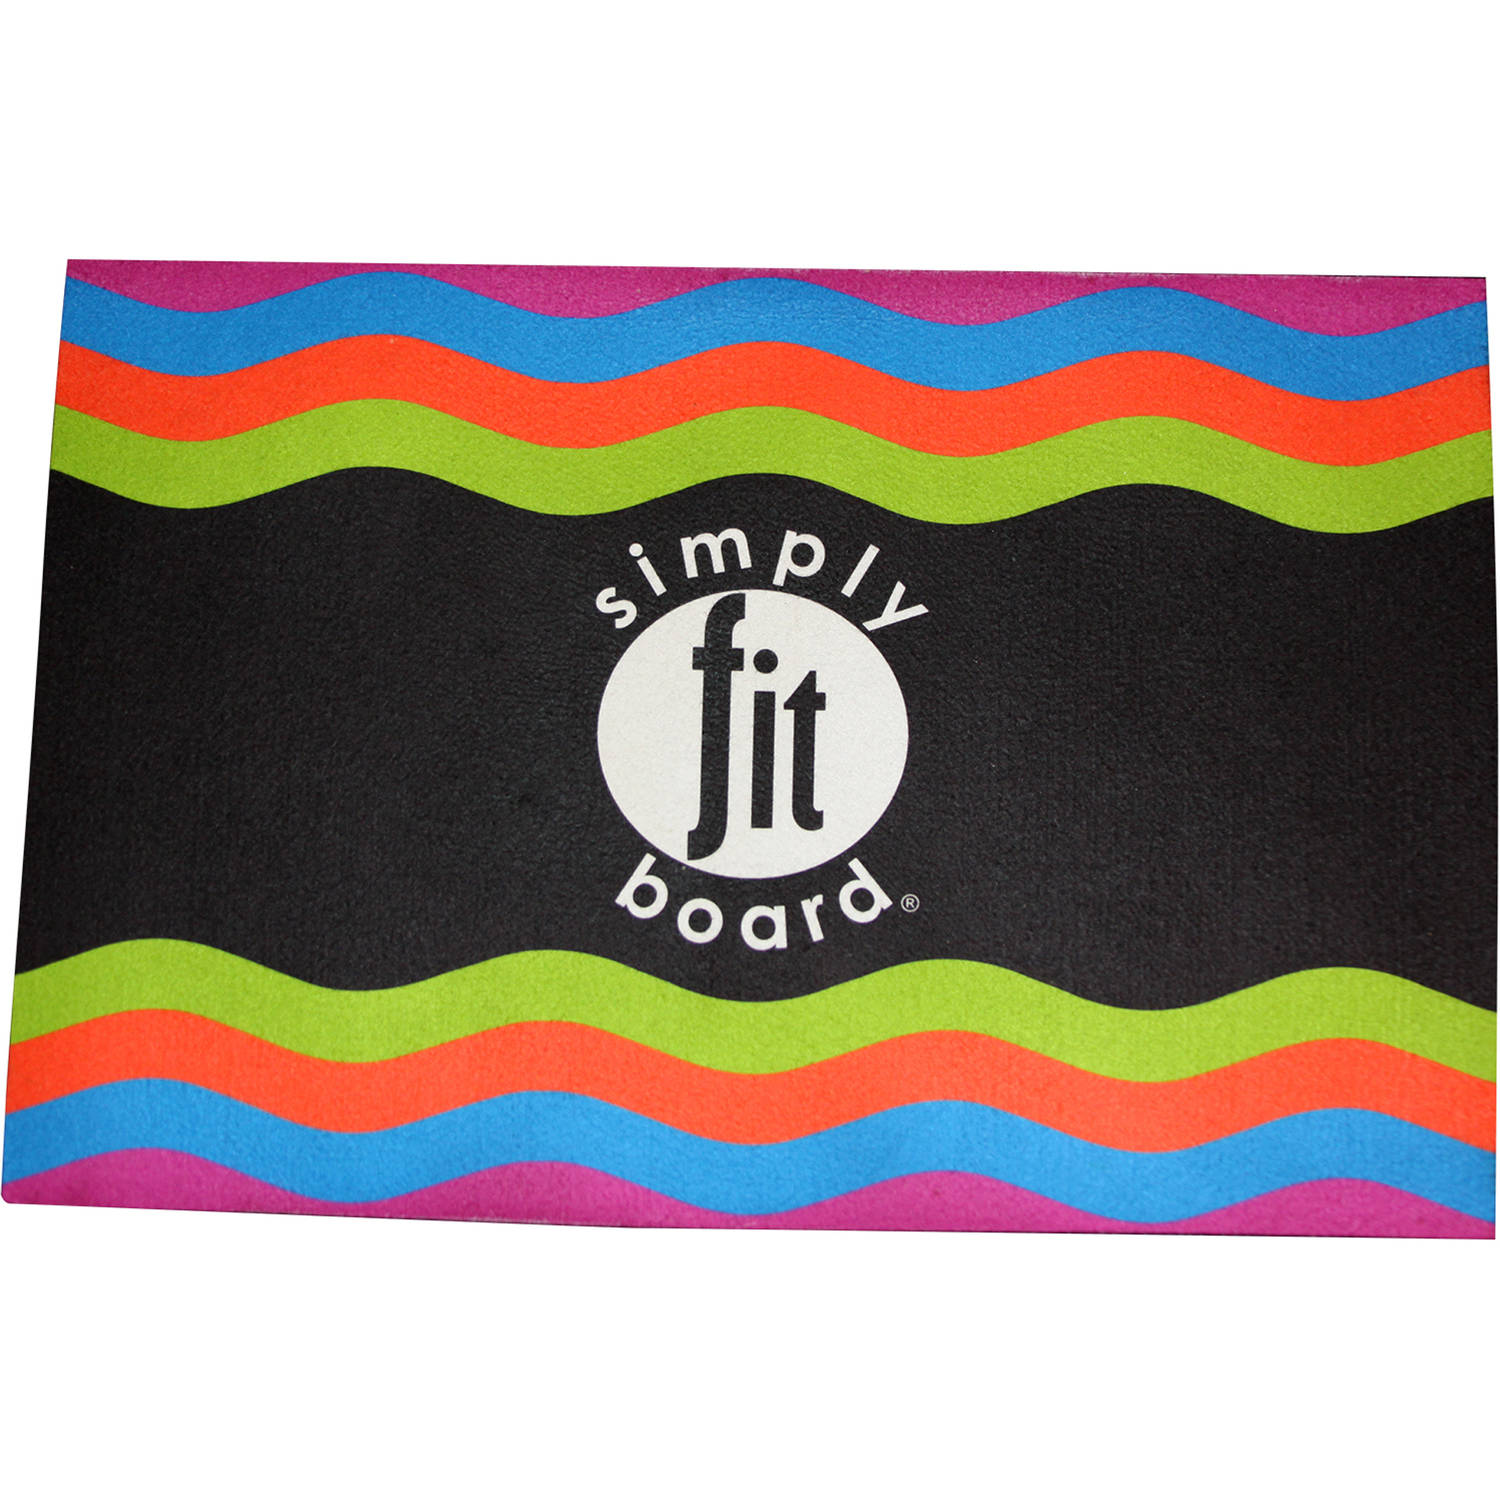 As Seen on TV Simply Fit Board Workout Mat by ASOTV